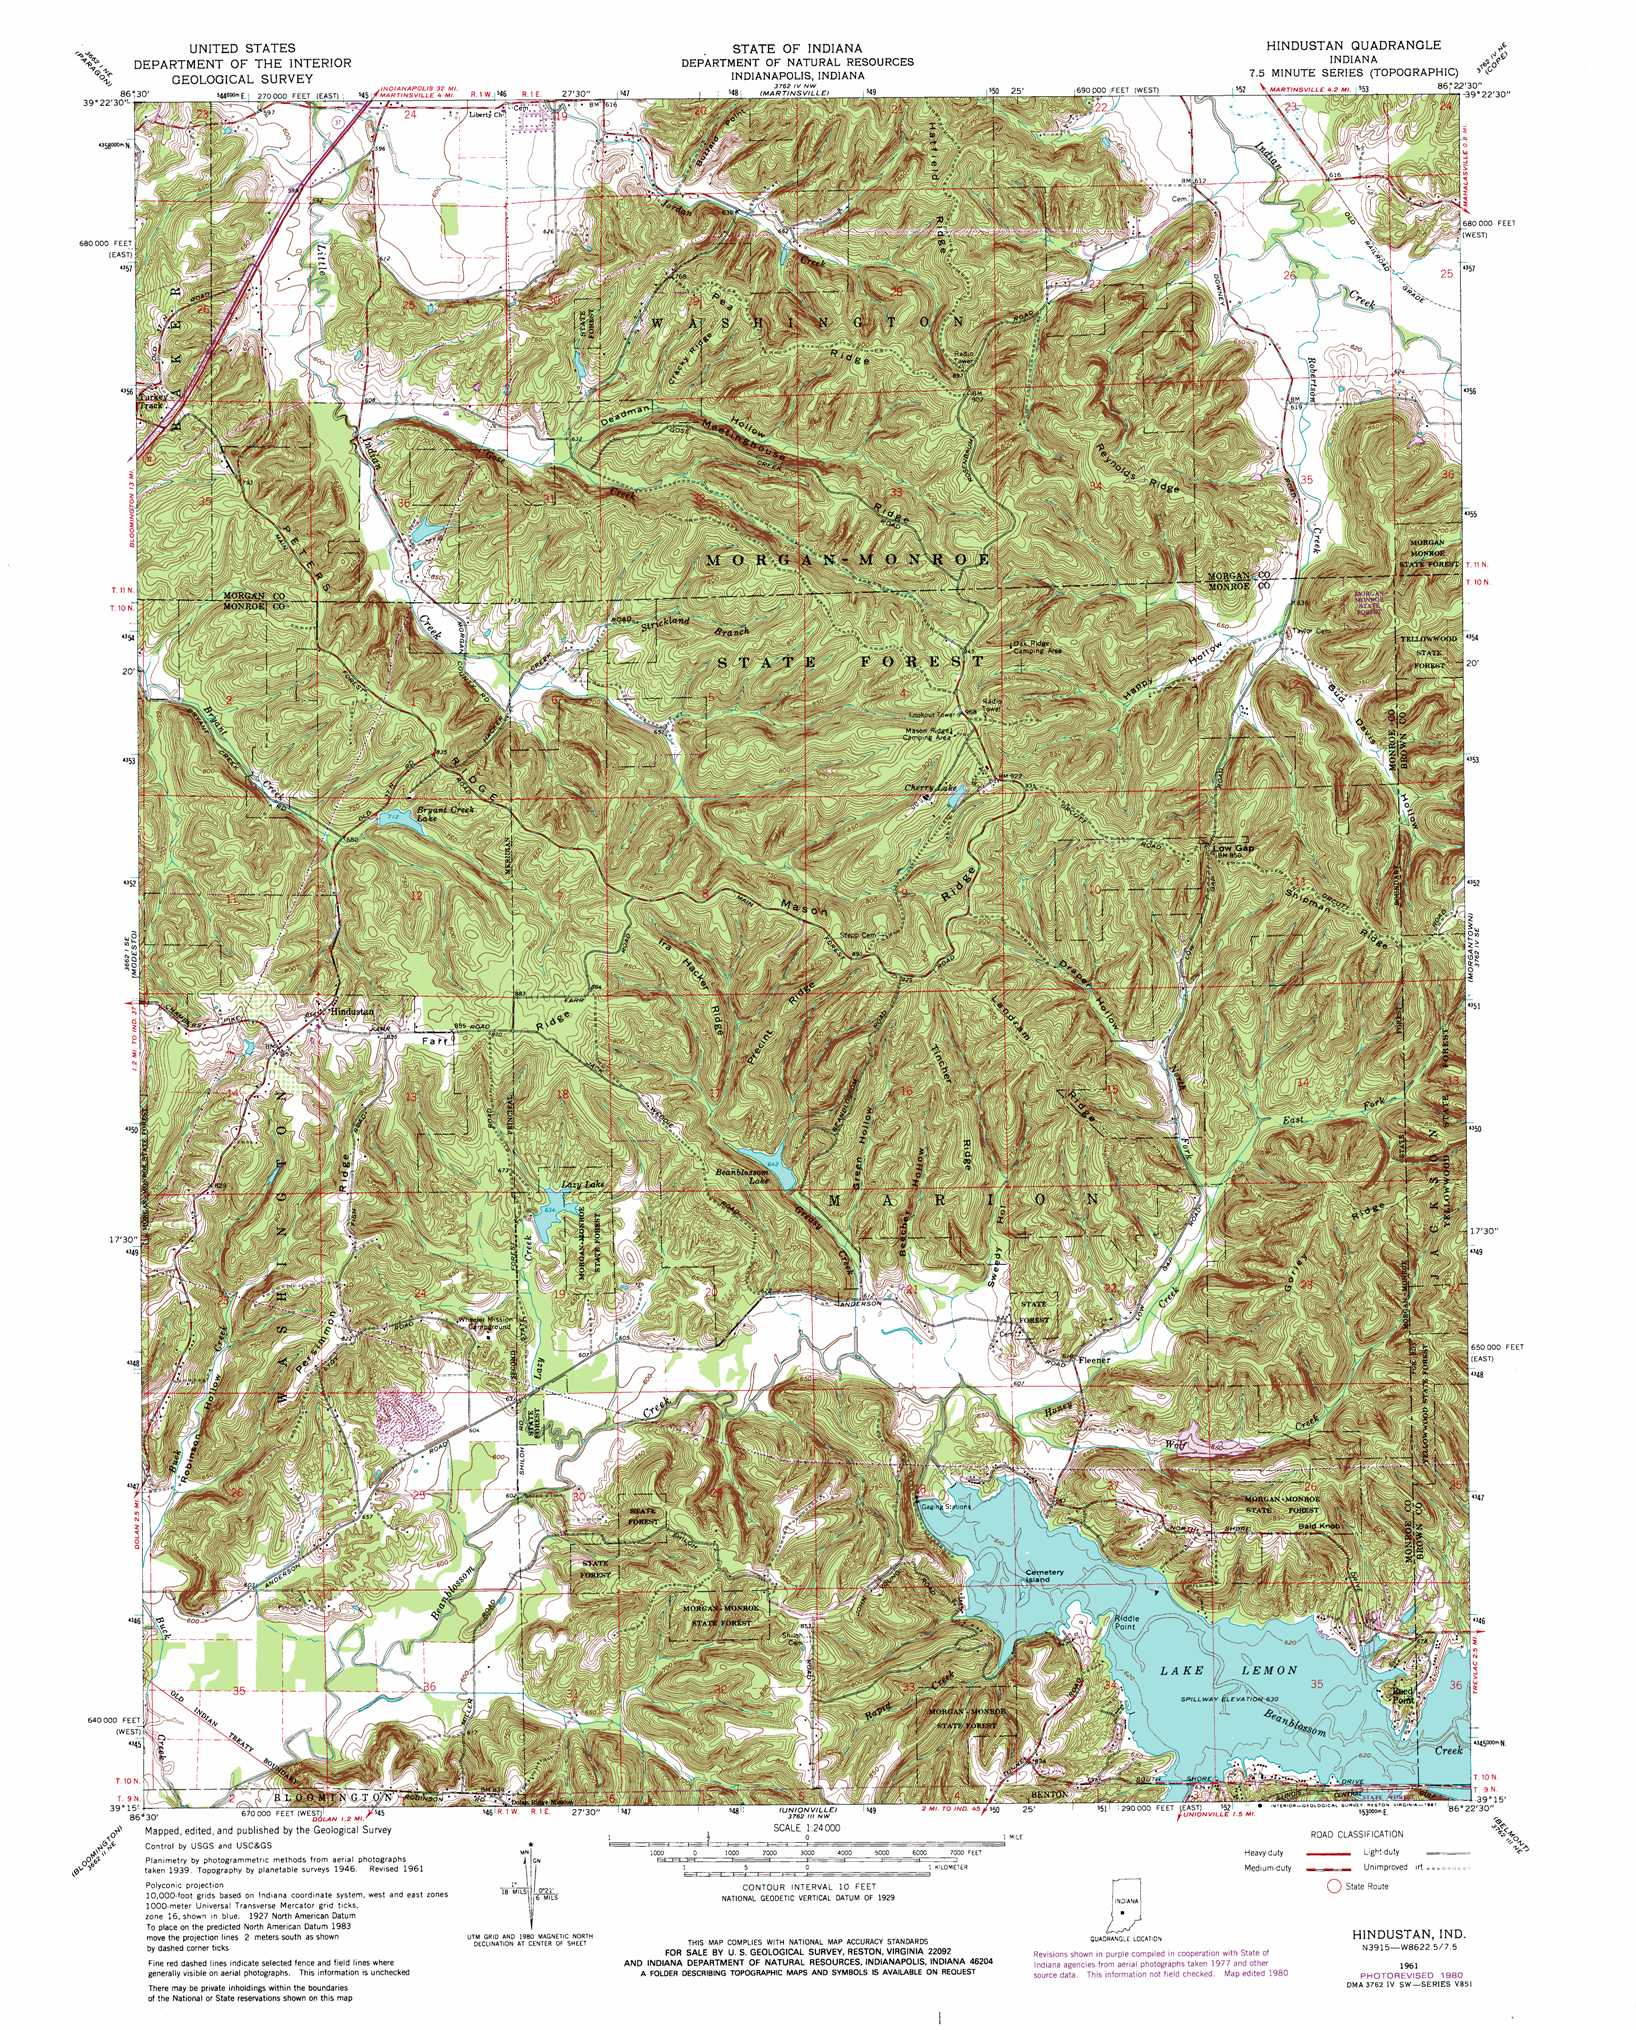 US Topo Maps Free Android Apps On Google Play The National Map - Topographic map of eastern us